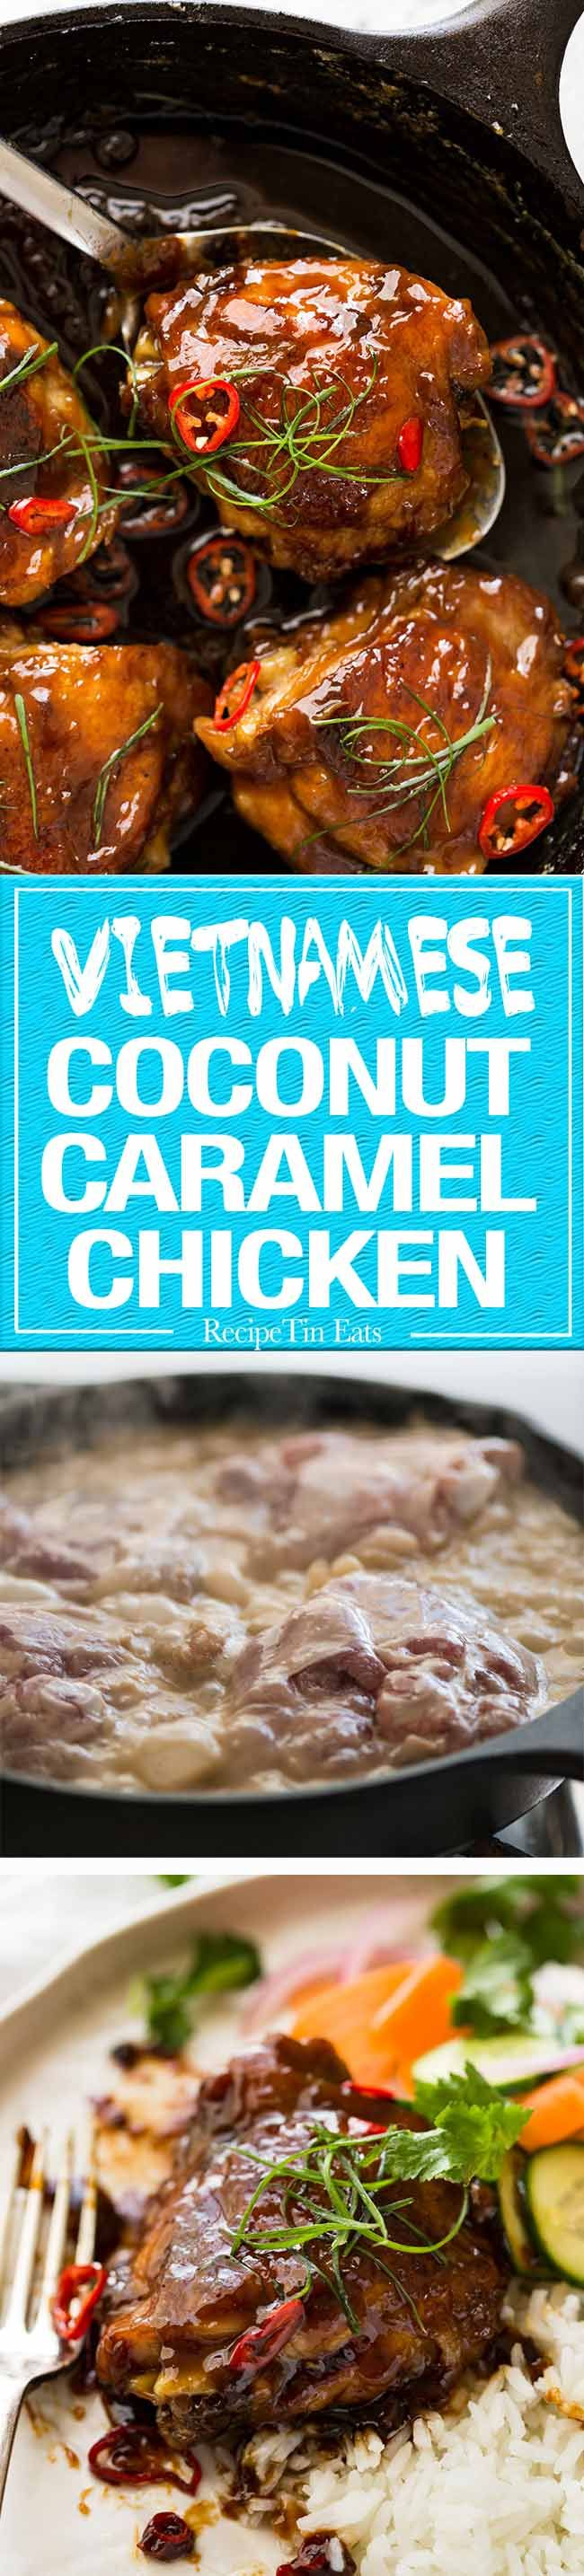 Vietnamese Coconut Caramel Chicken - 7 ingredient magic. The coconut fragrance is heavenly! www.recipetineats.com